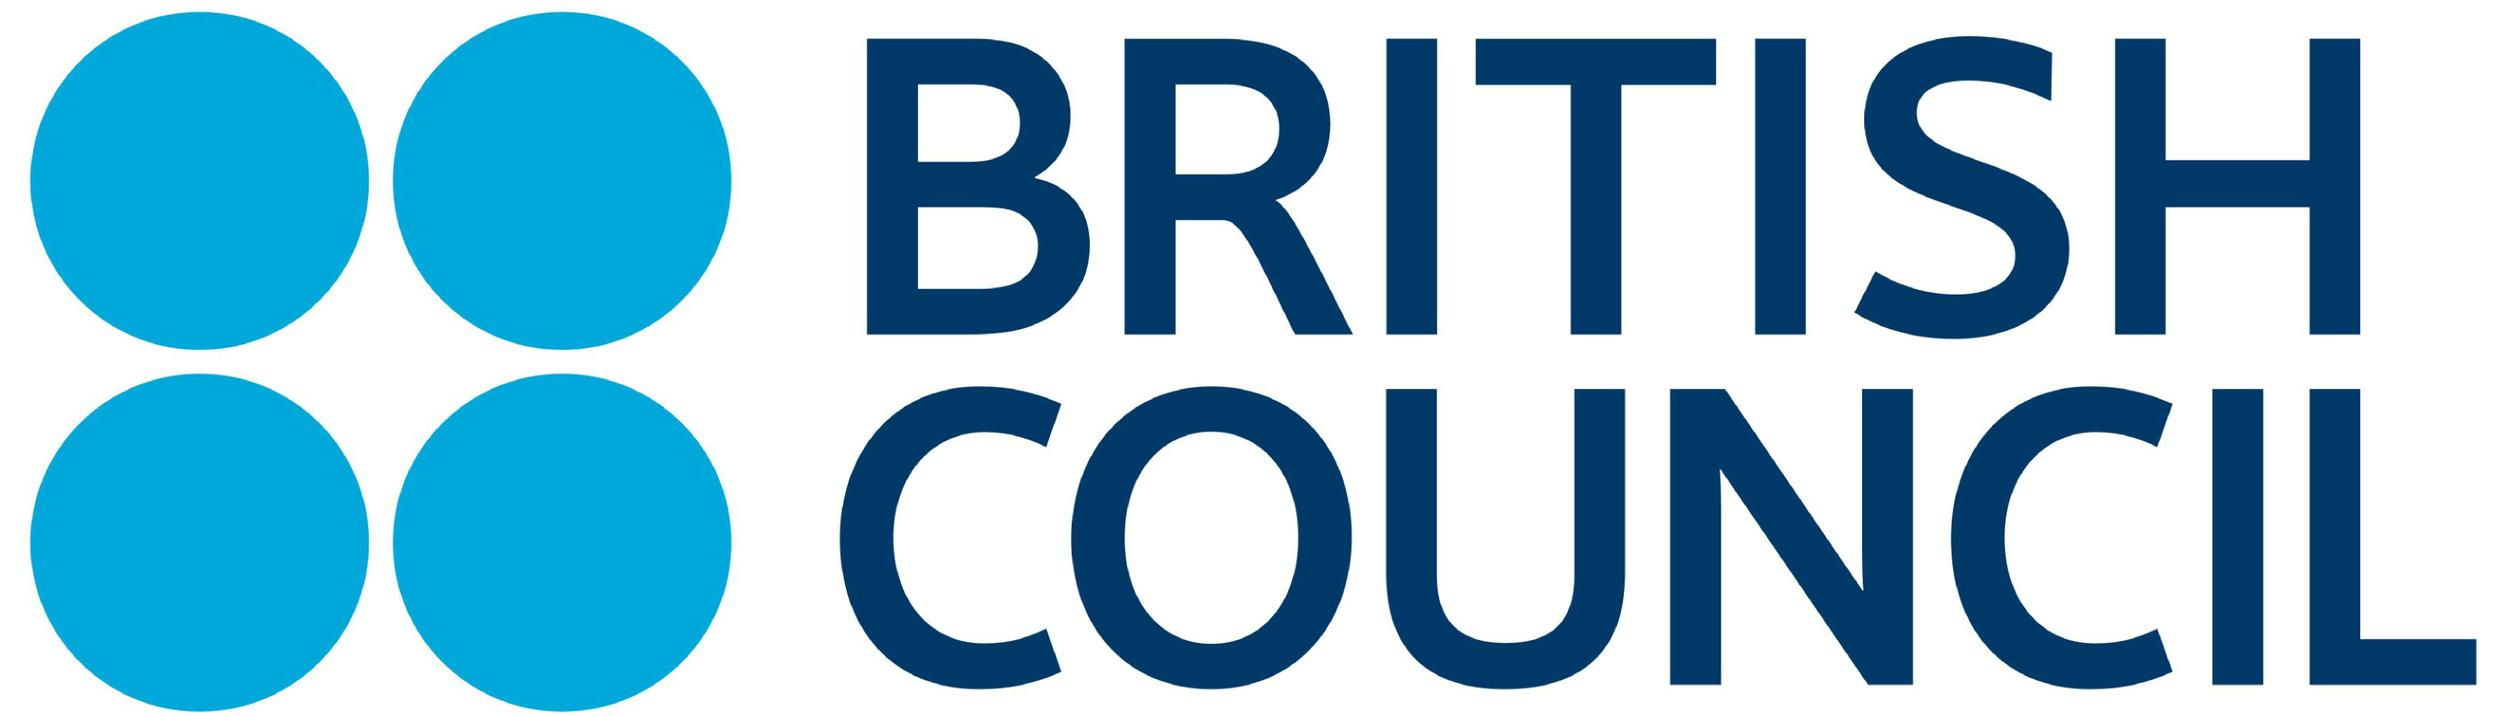 british council logo.jpg